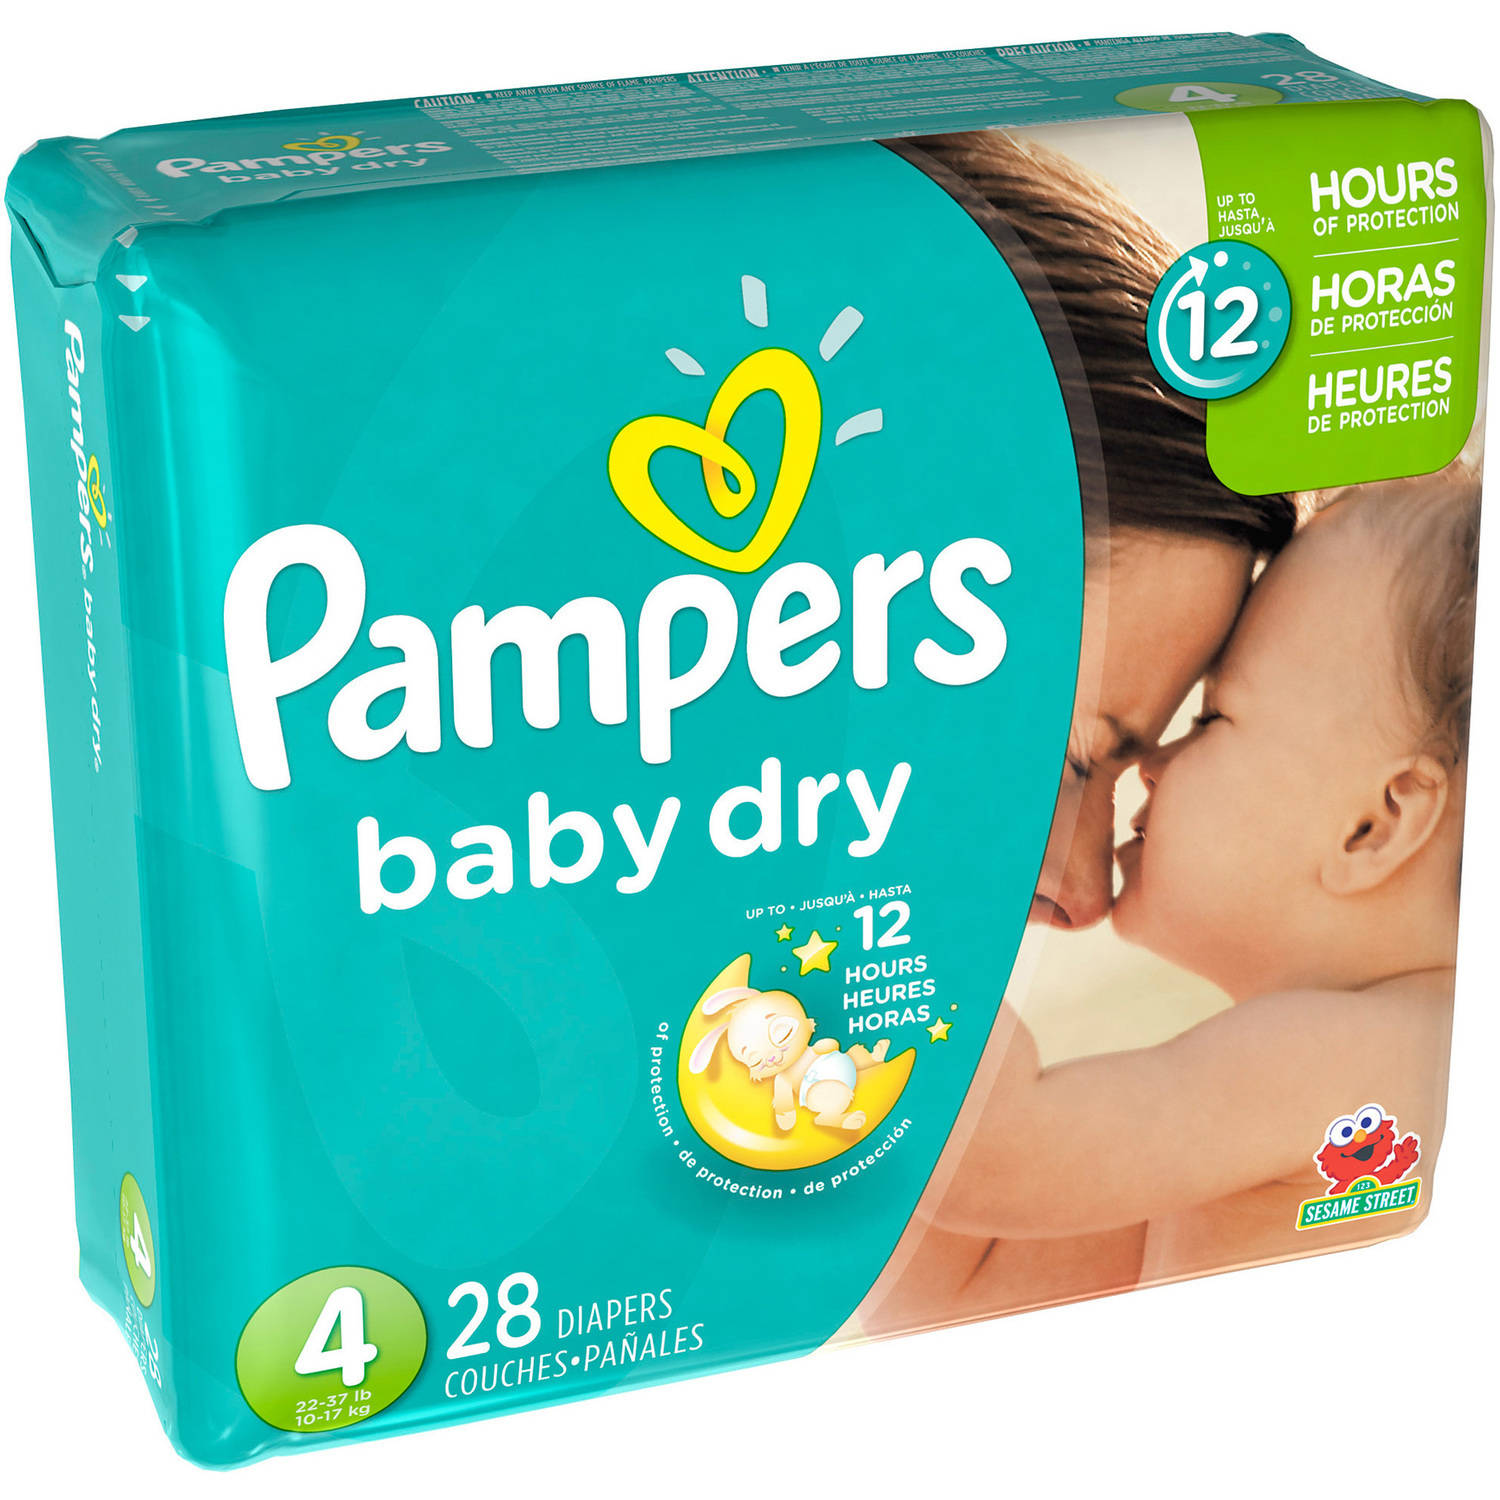 Pampers Baby Dry Diapers, Size 4 (Choose Diaper Count)